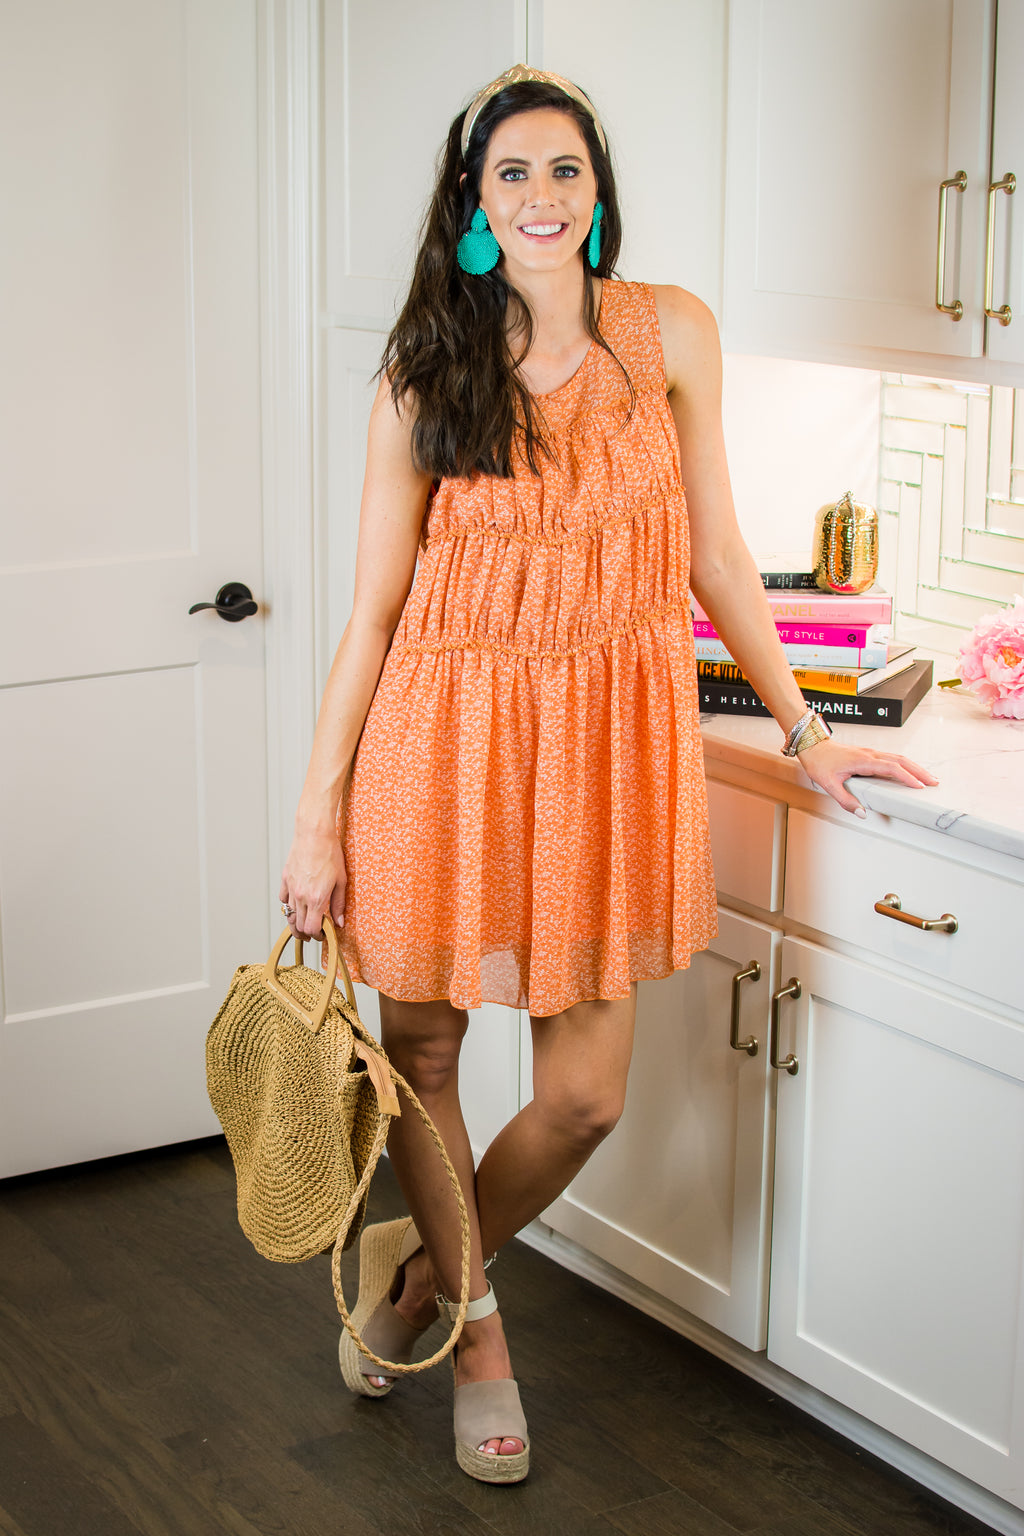 SunKist Shift Dress In Orange - Southern House